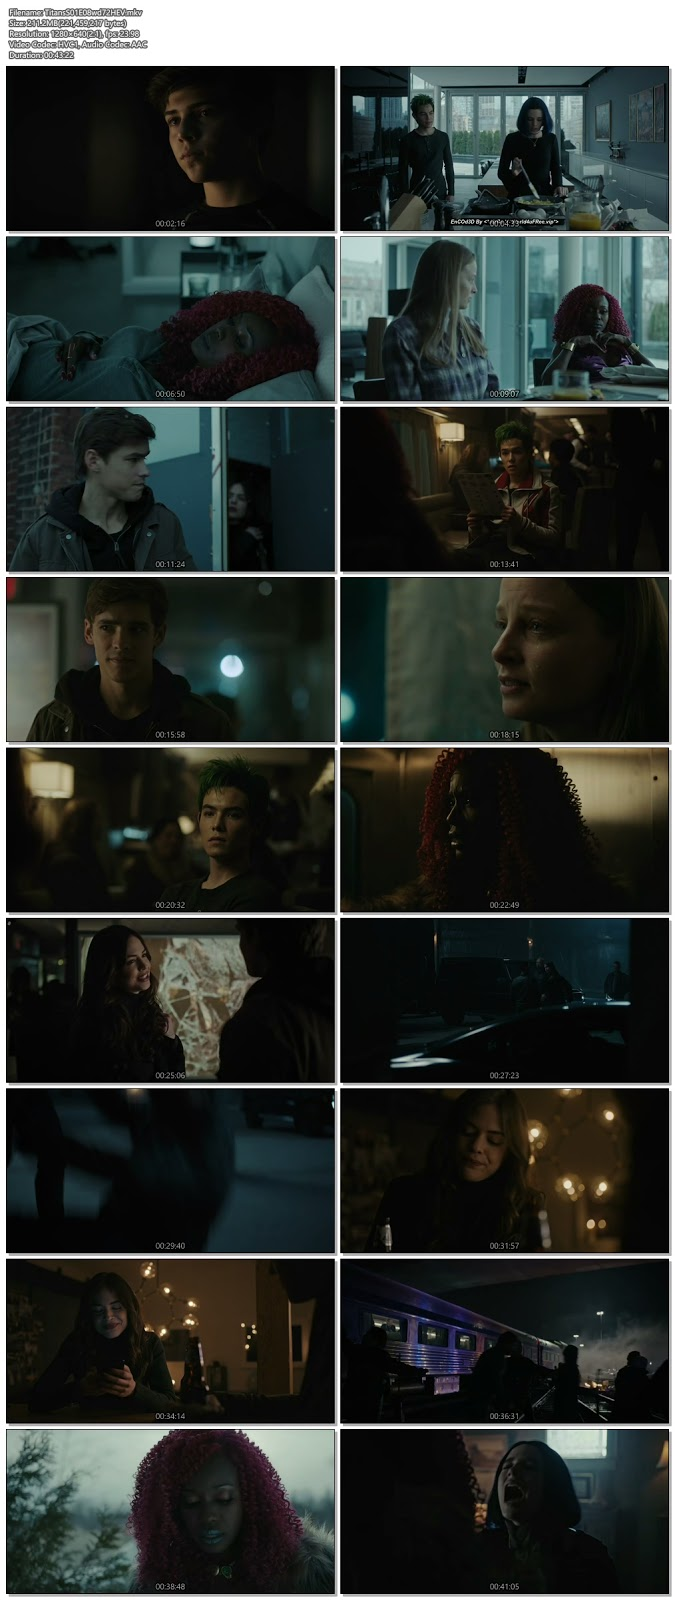 Titans S01 Episode 08 720p HDTV 200MB ESub x265 HEVC , hollwood tv series Titans S01 Episode 08 720p hdtv tv show hevc x265 hdrip 200mb 250mb free download or watch online at world4ufree.vip